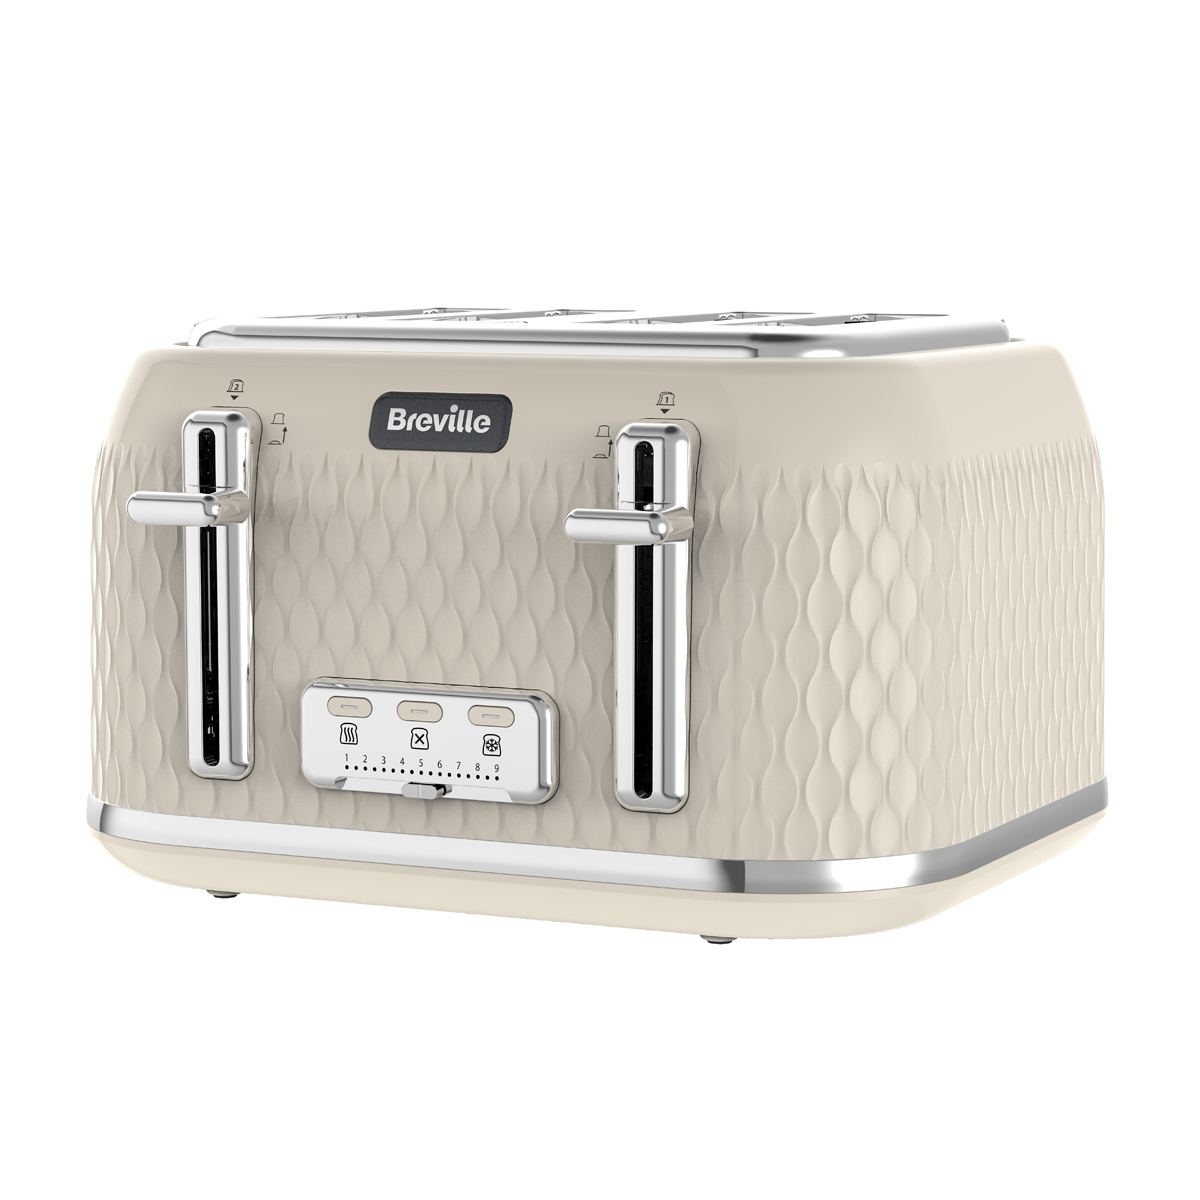 Curve 4 Slice Toaster, Cream with Chrome